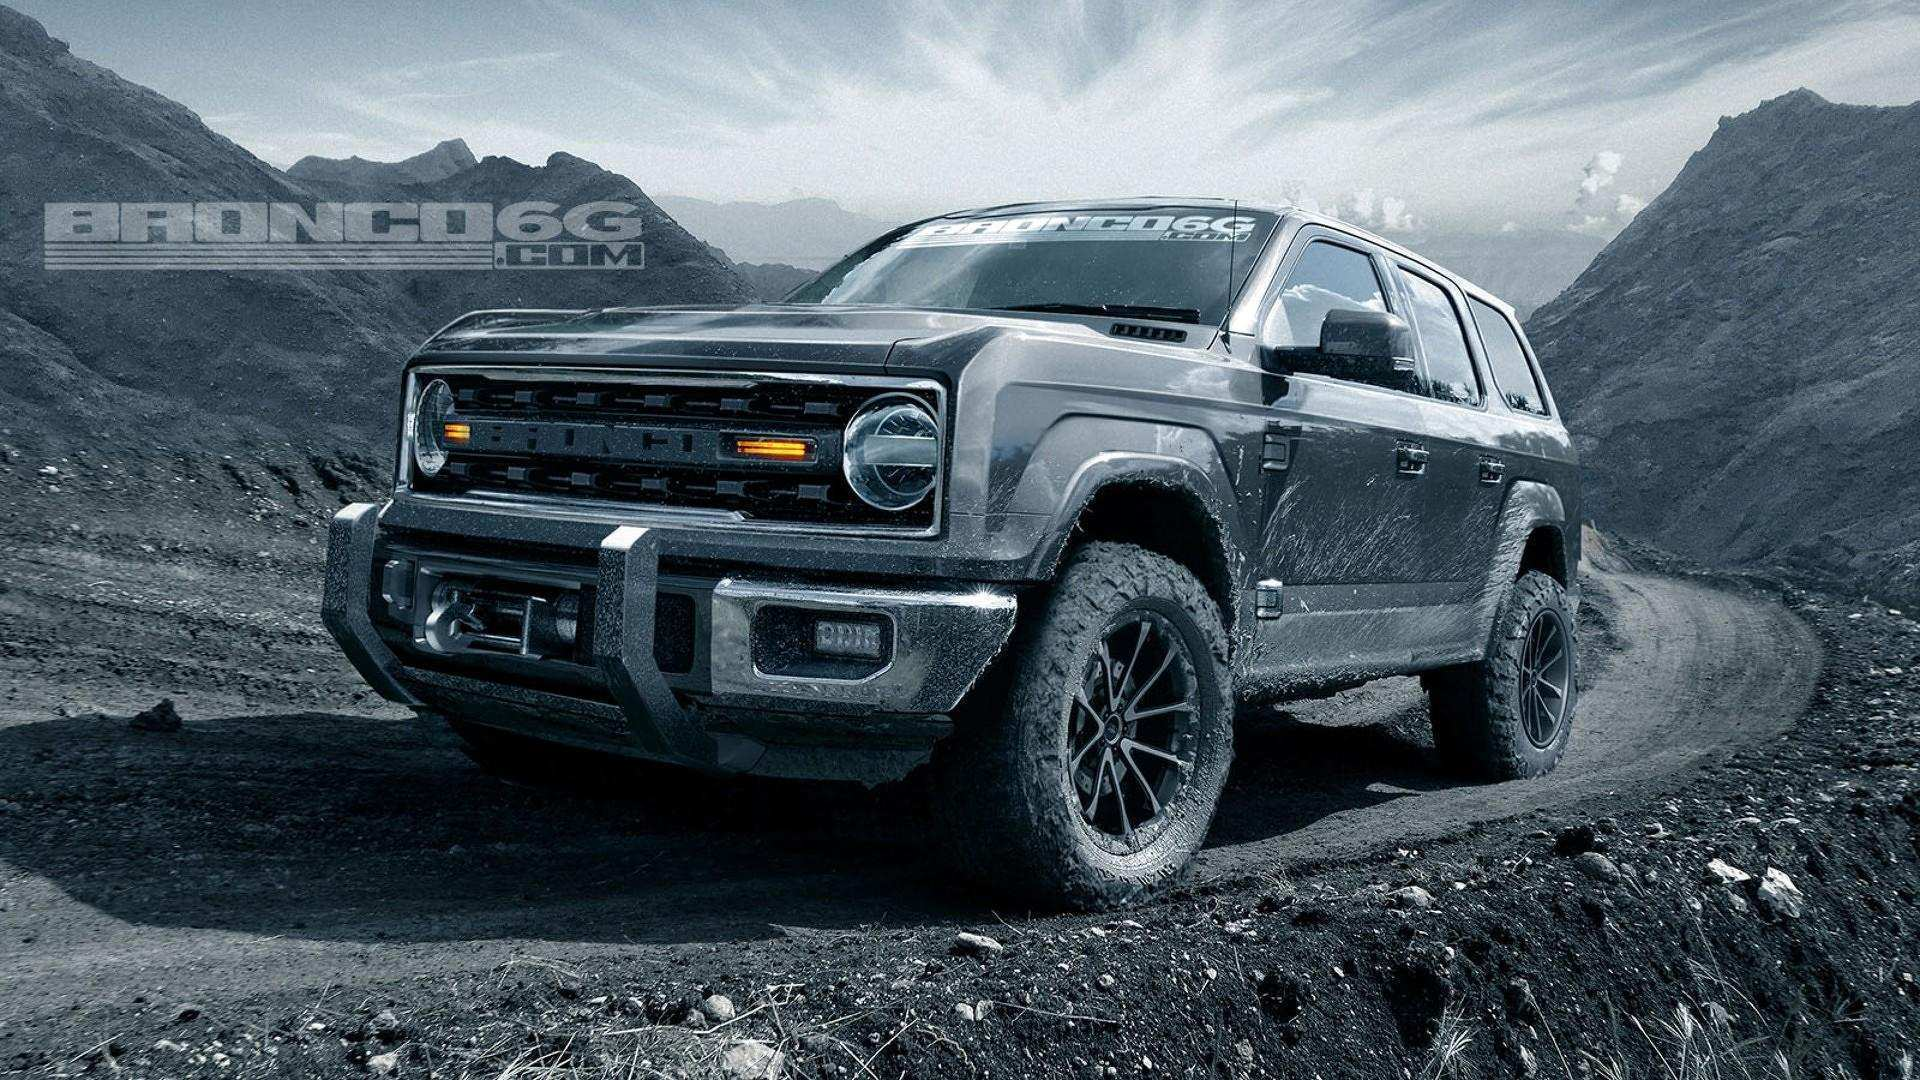 86 All New 2020 Ford Bronco Interior Review And Release Date